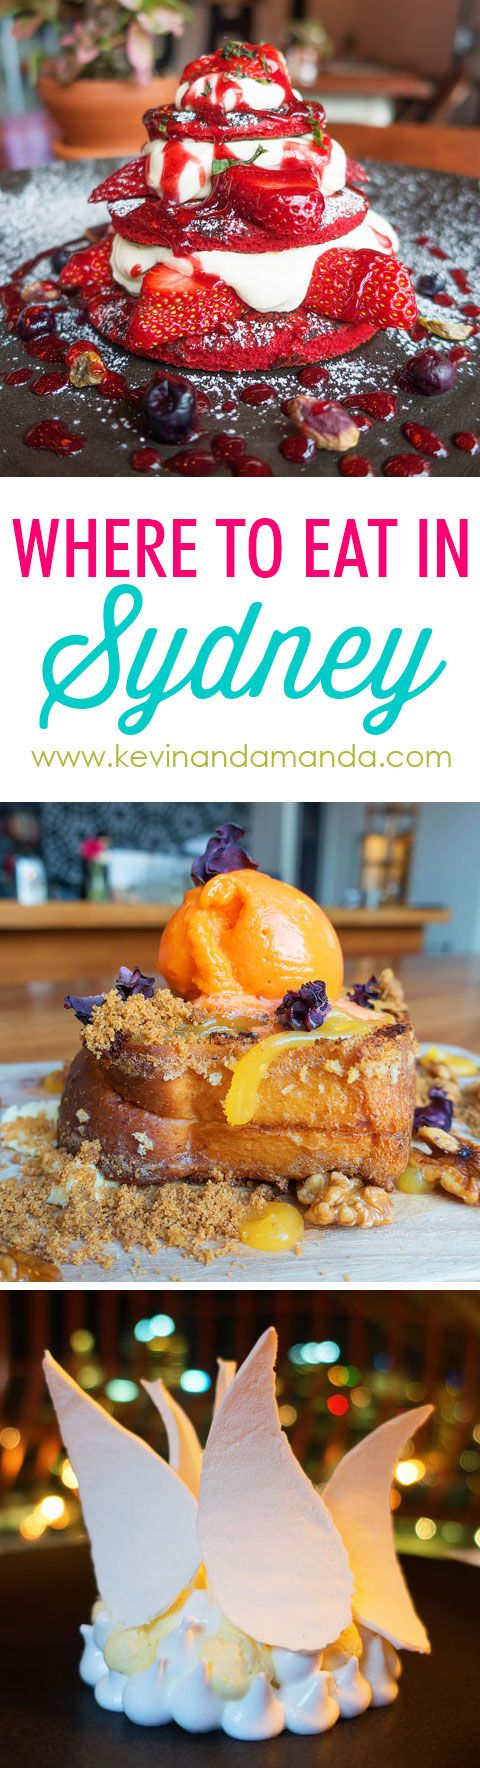 Where to Eat in SYDNEY! Sydney, Australia has the most AMAZING food scene!! Here is the ultimate guide to foods you MUST try when you're in Sydney. (And trust me, it's NOT vegemite!) This post has me ready to hop on a plane right now!